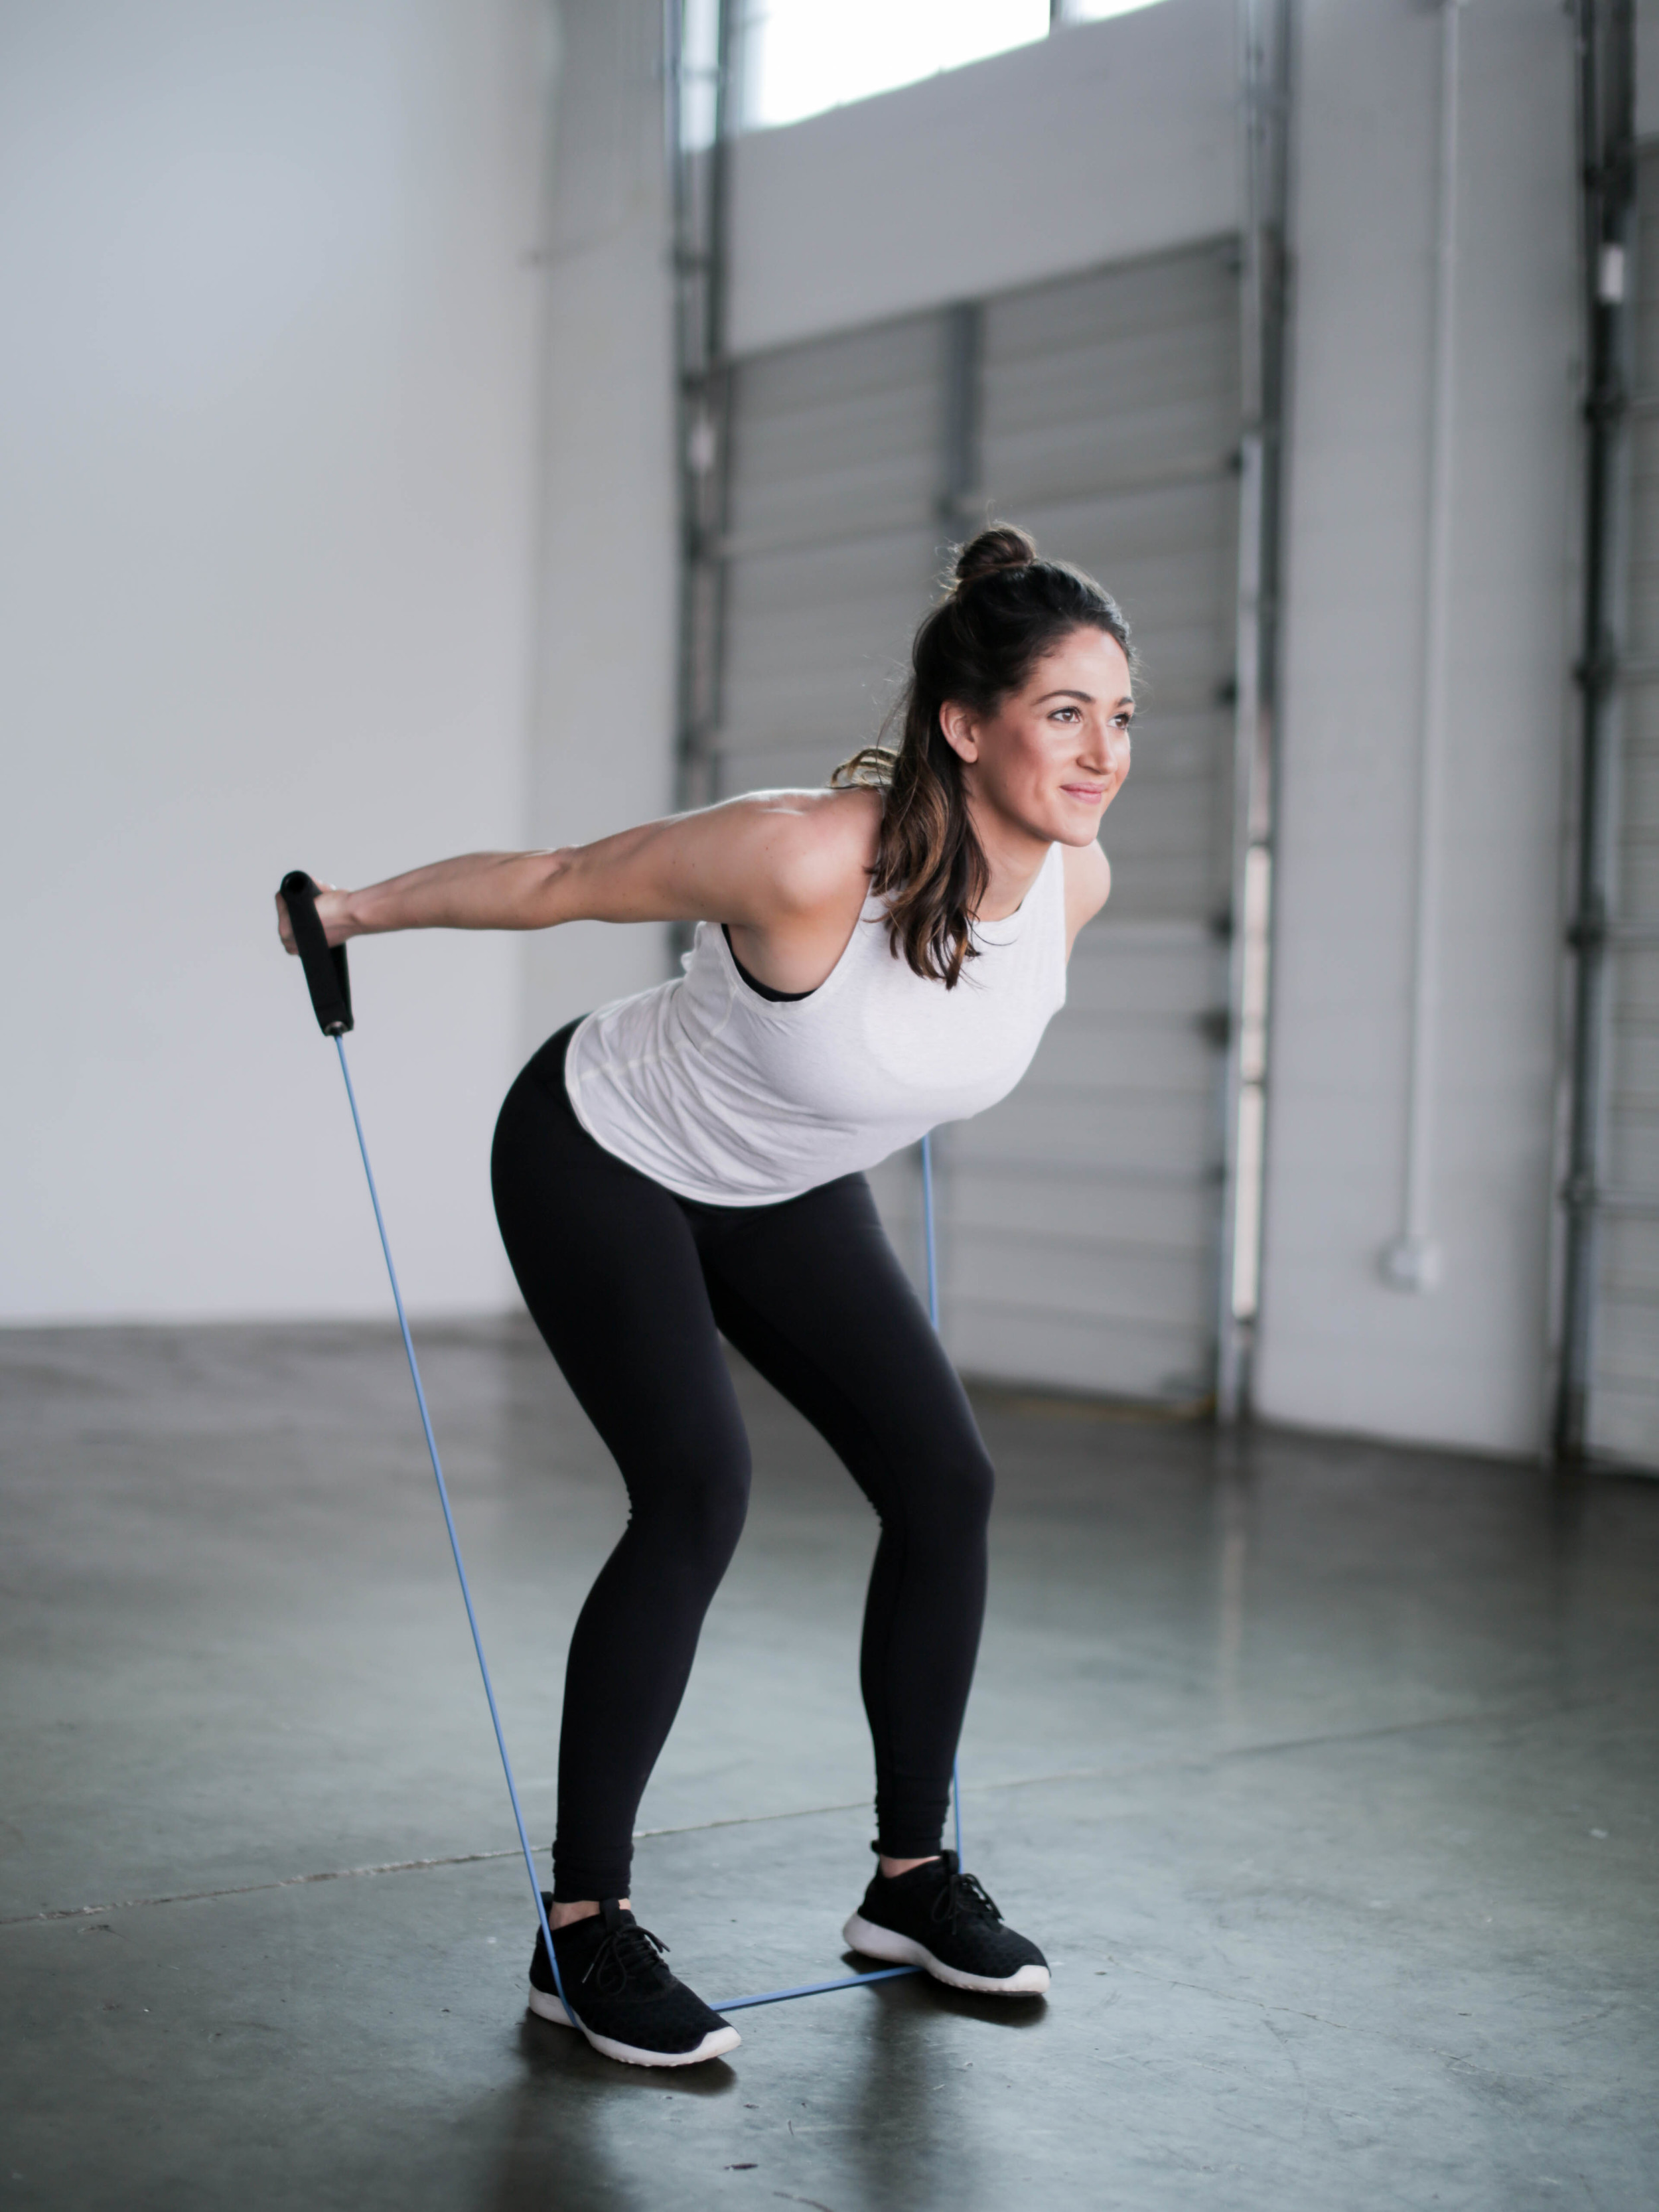 On-The-Go Resistant Band Workout | Jennifer Diaz | Photo by Kelsey Cherry